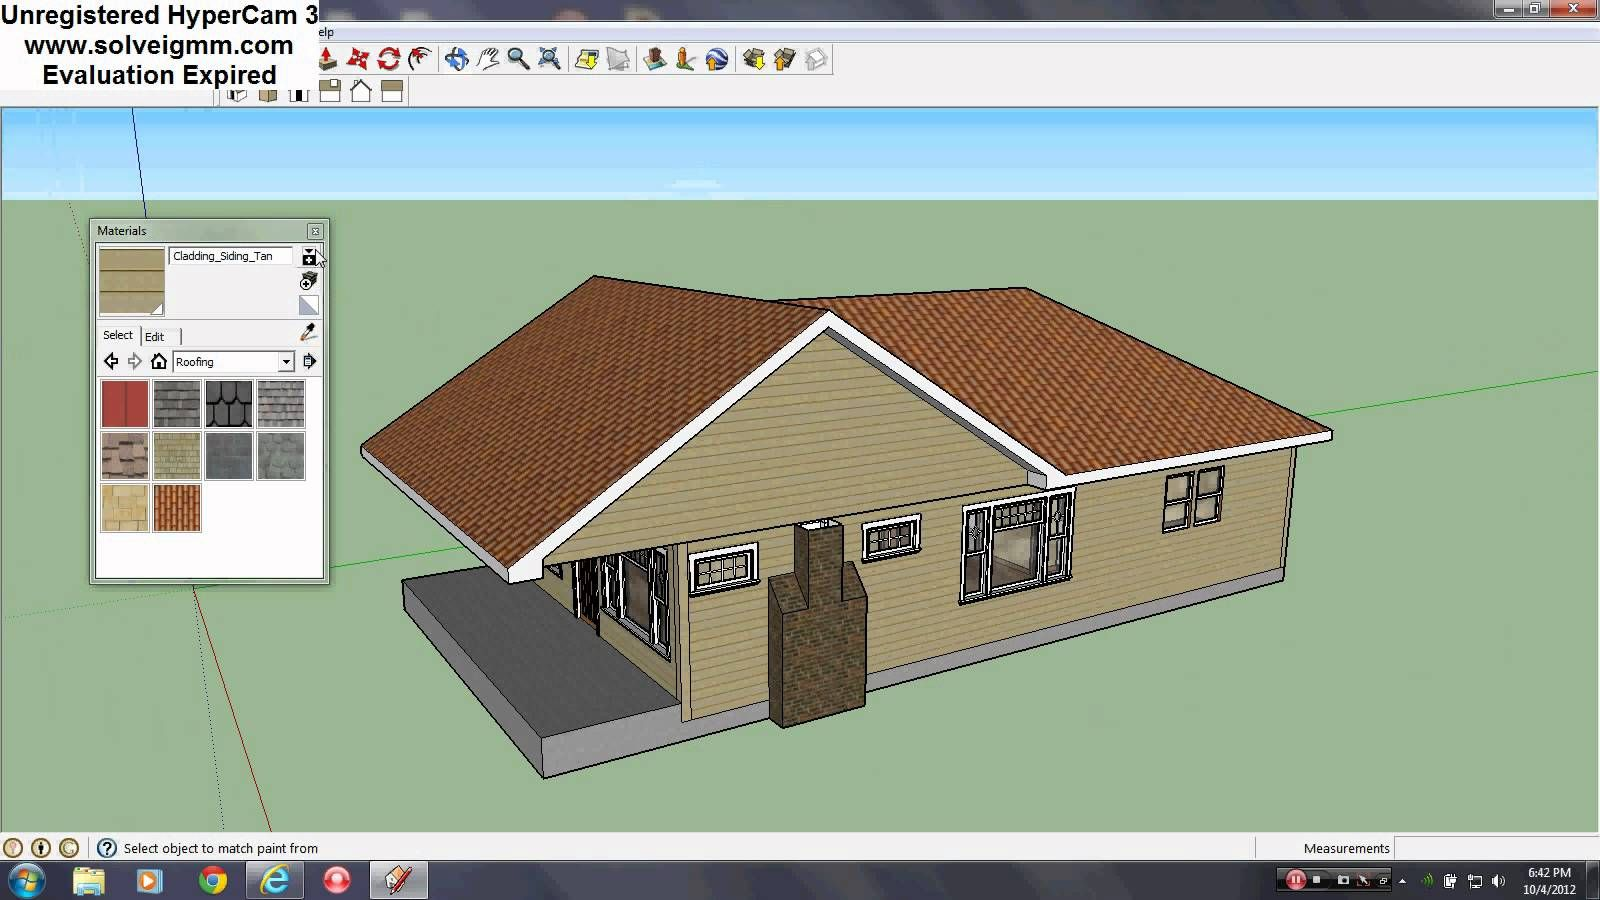 How to Make a Roof in SketchUp